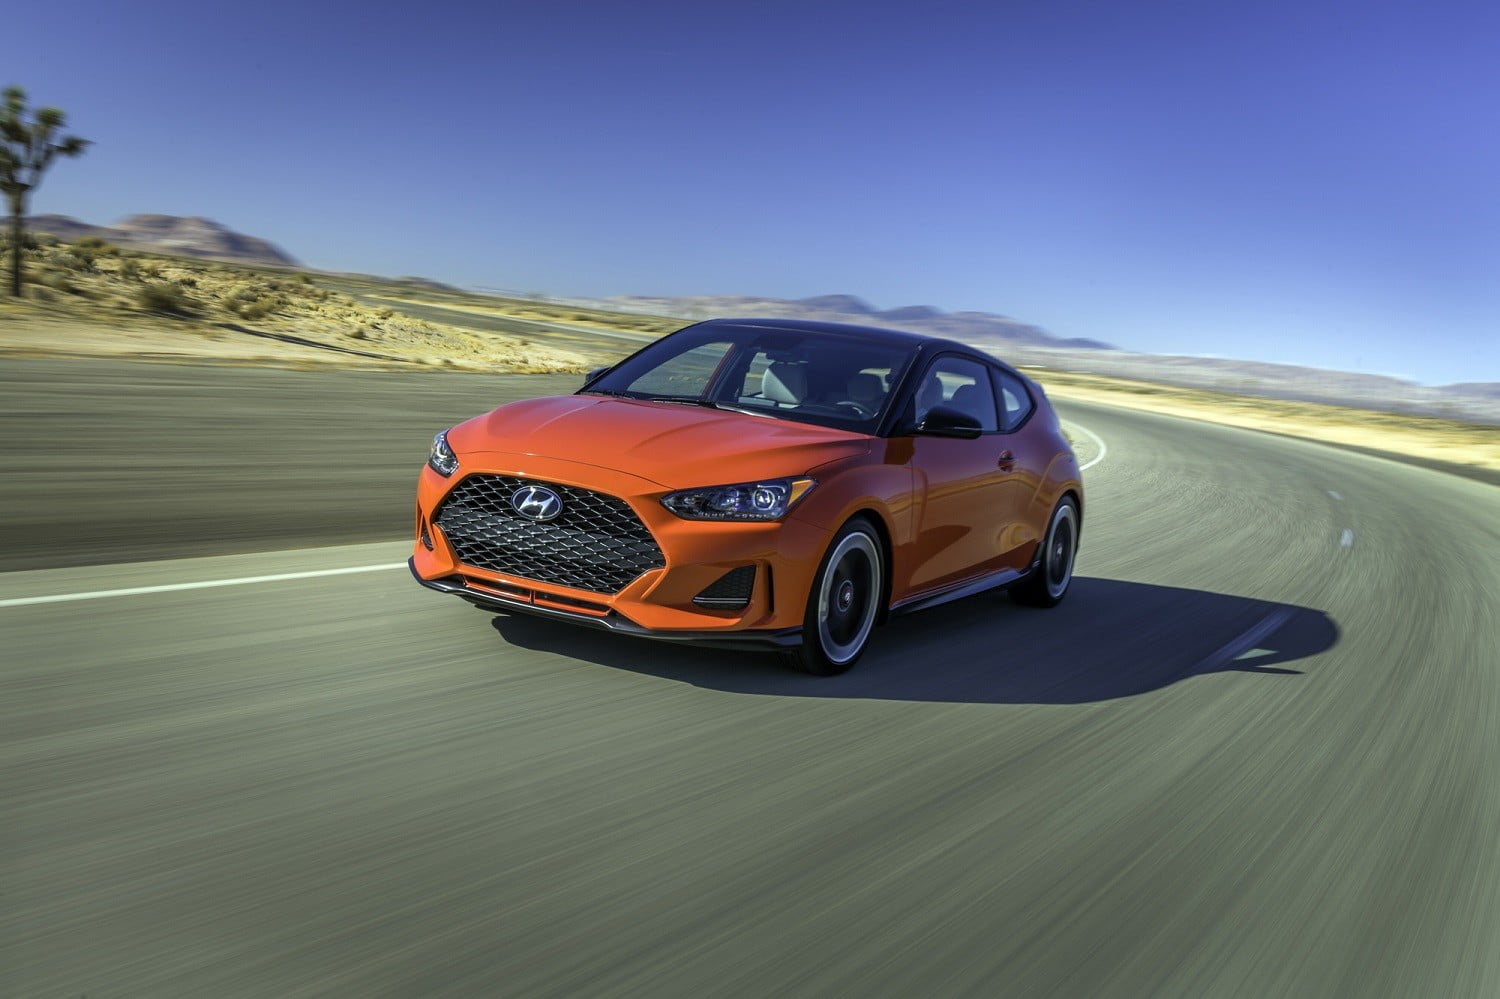 2019 Hyundai Veloster | News, Performance, Specs, Pictures | Digital Trends